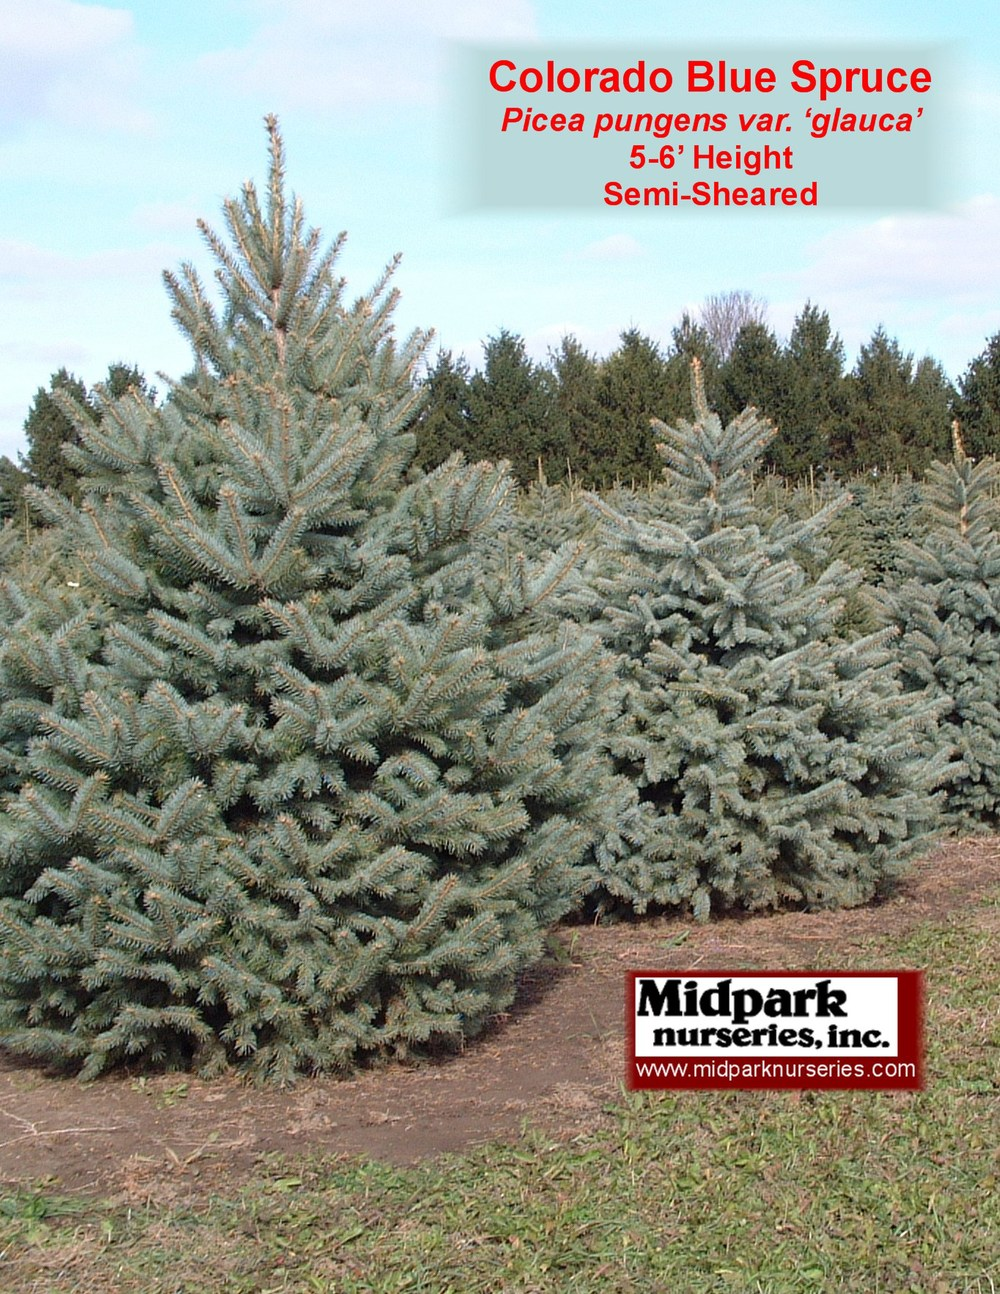 Colorado_Blue_Spruce_6ft_SS_02_1027_8x11.jpg